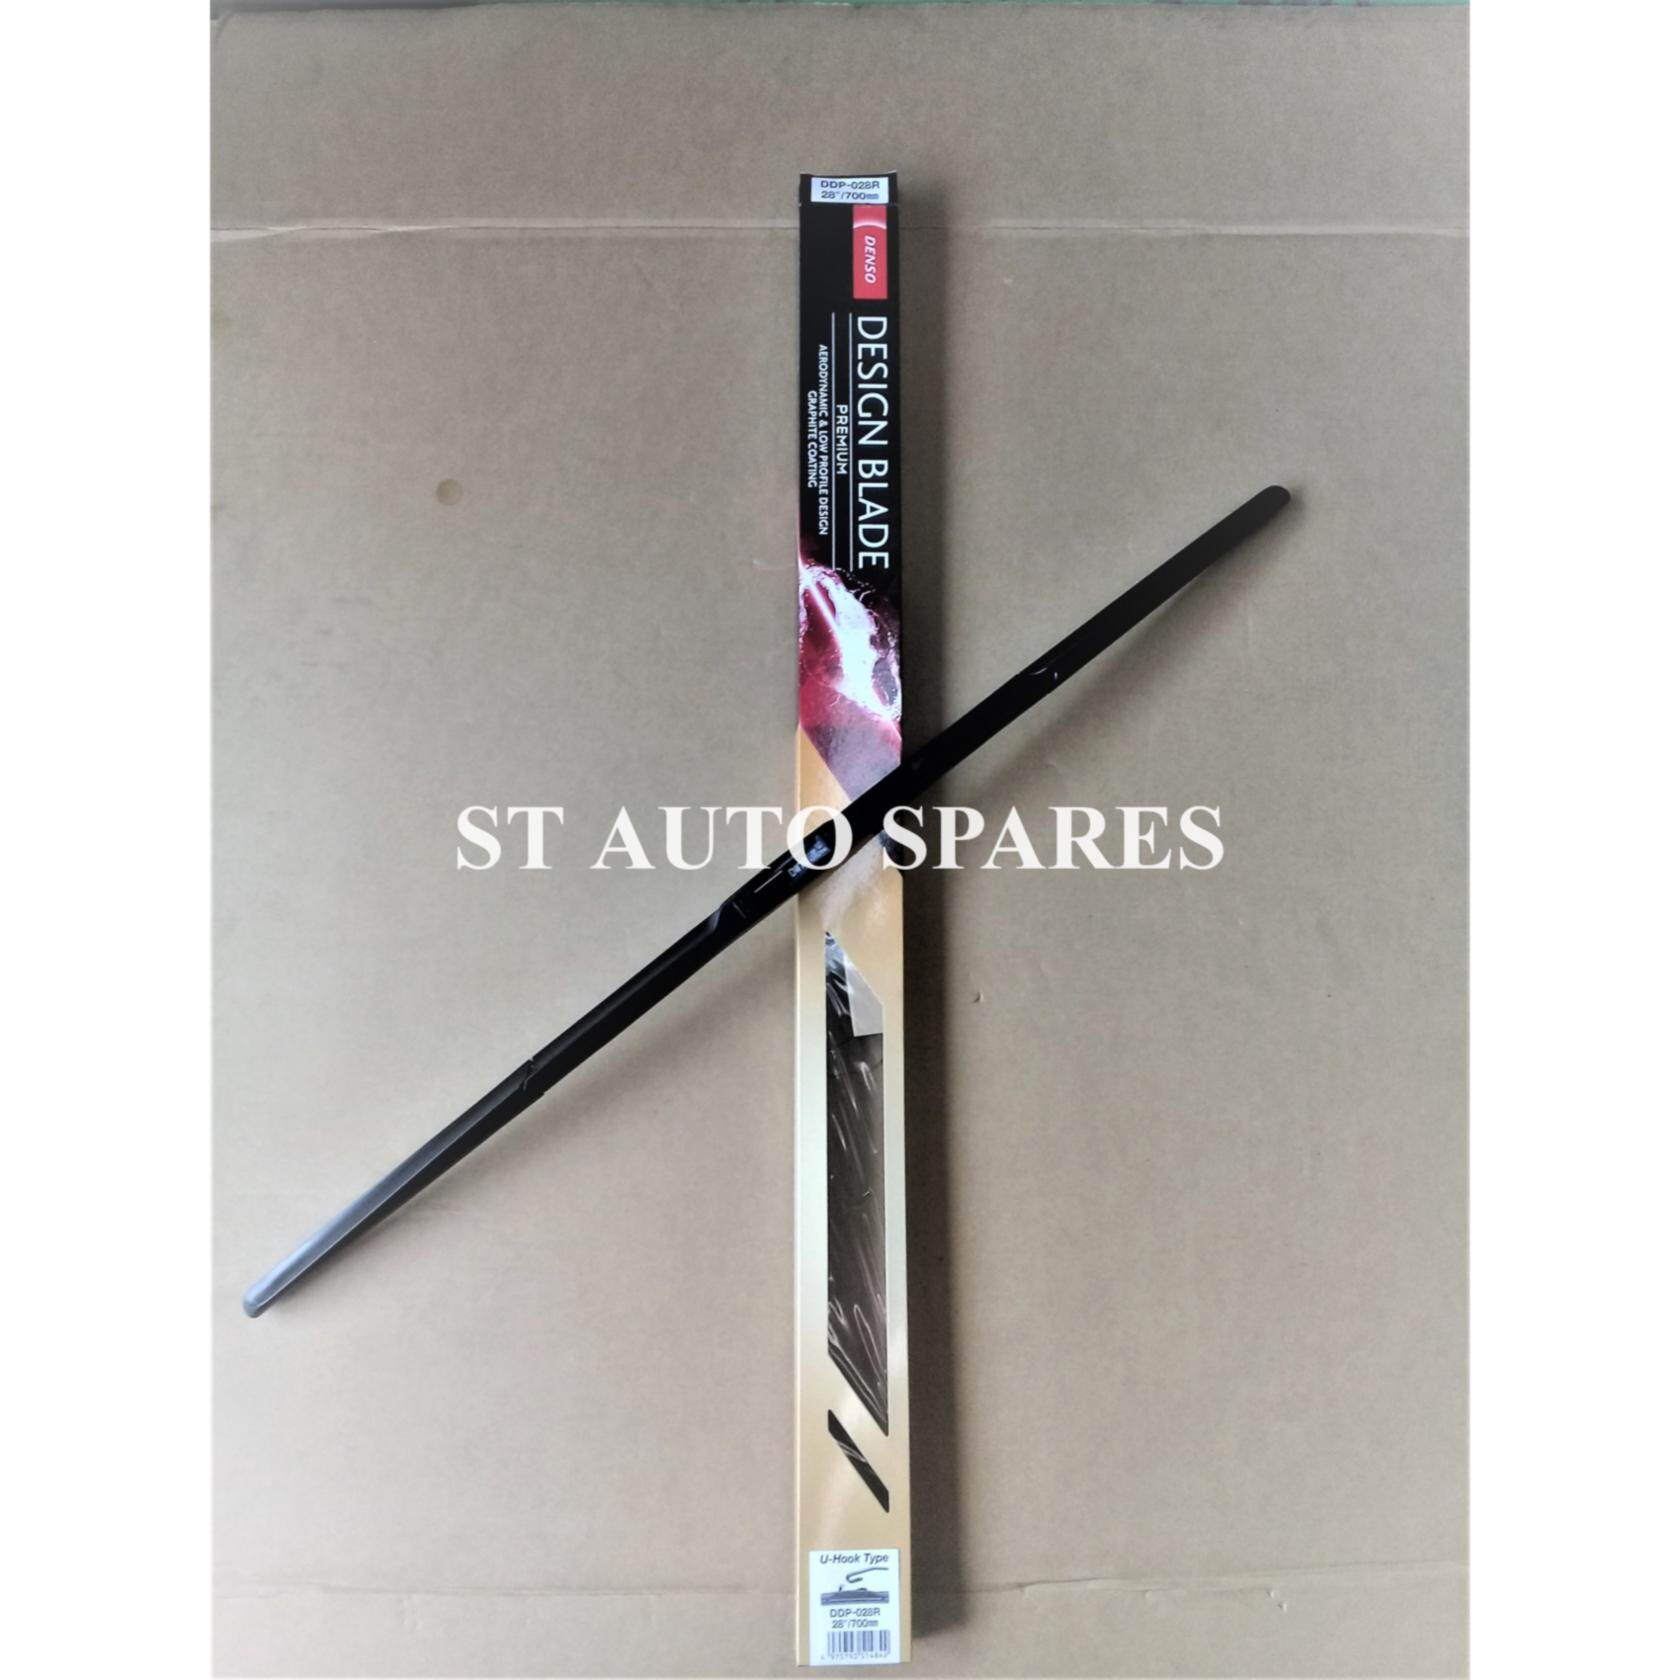 Denso Products For The Best Prices In Malaysia Kompresor Suzuki Sx4 Premium Japan Wiper Blade Right 28 Estima Acr50